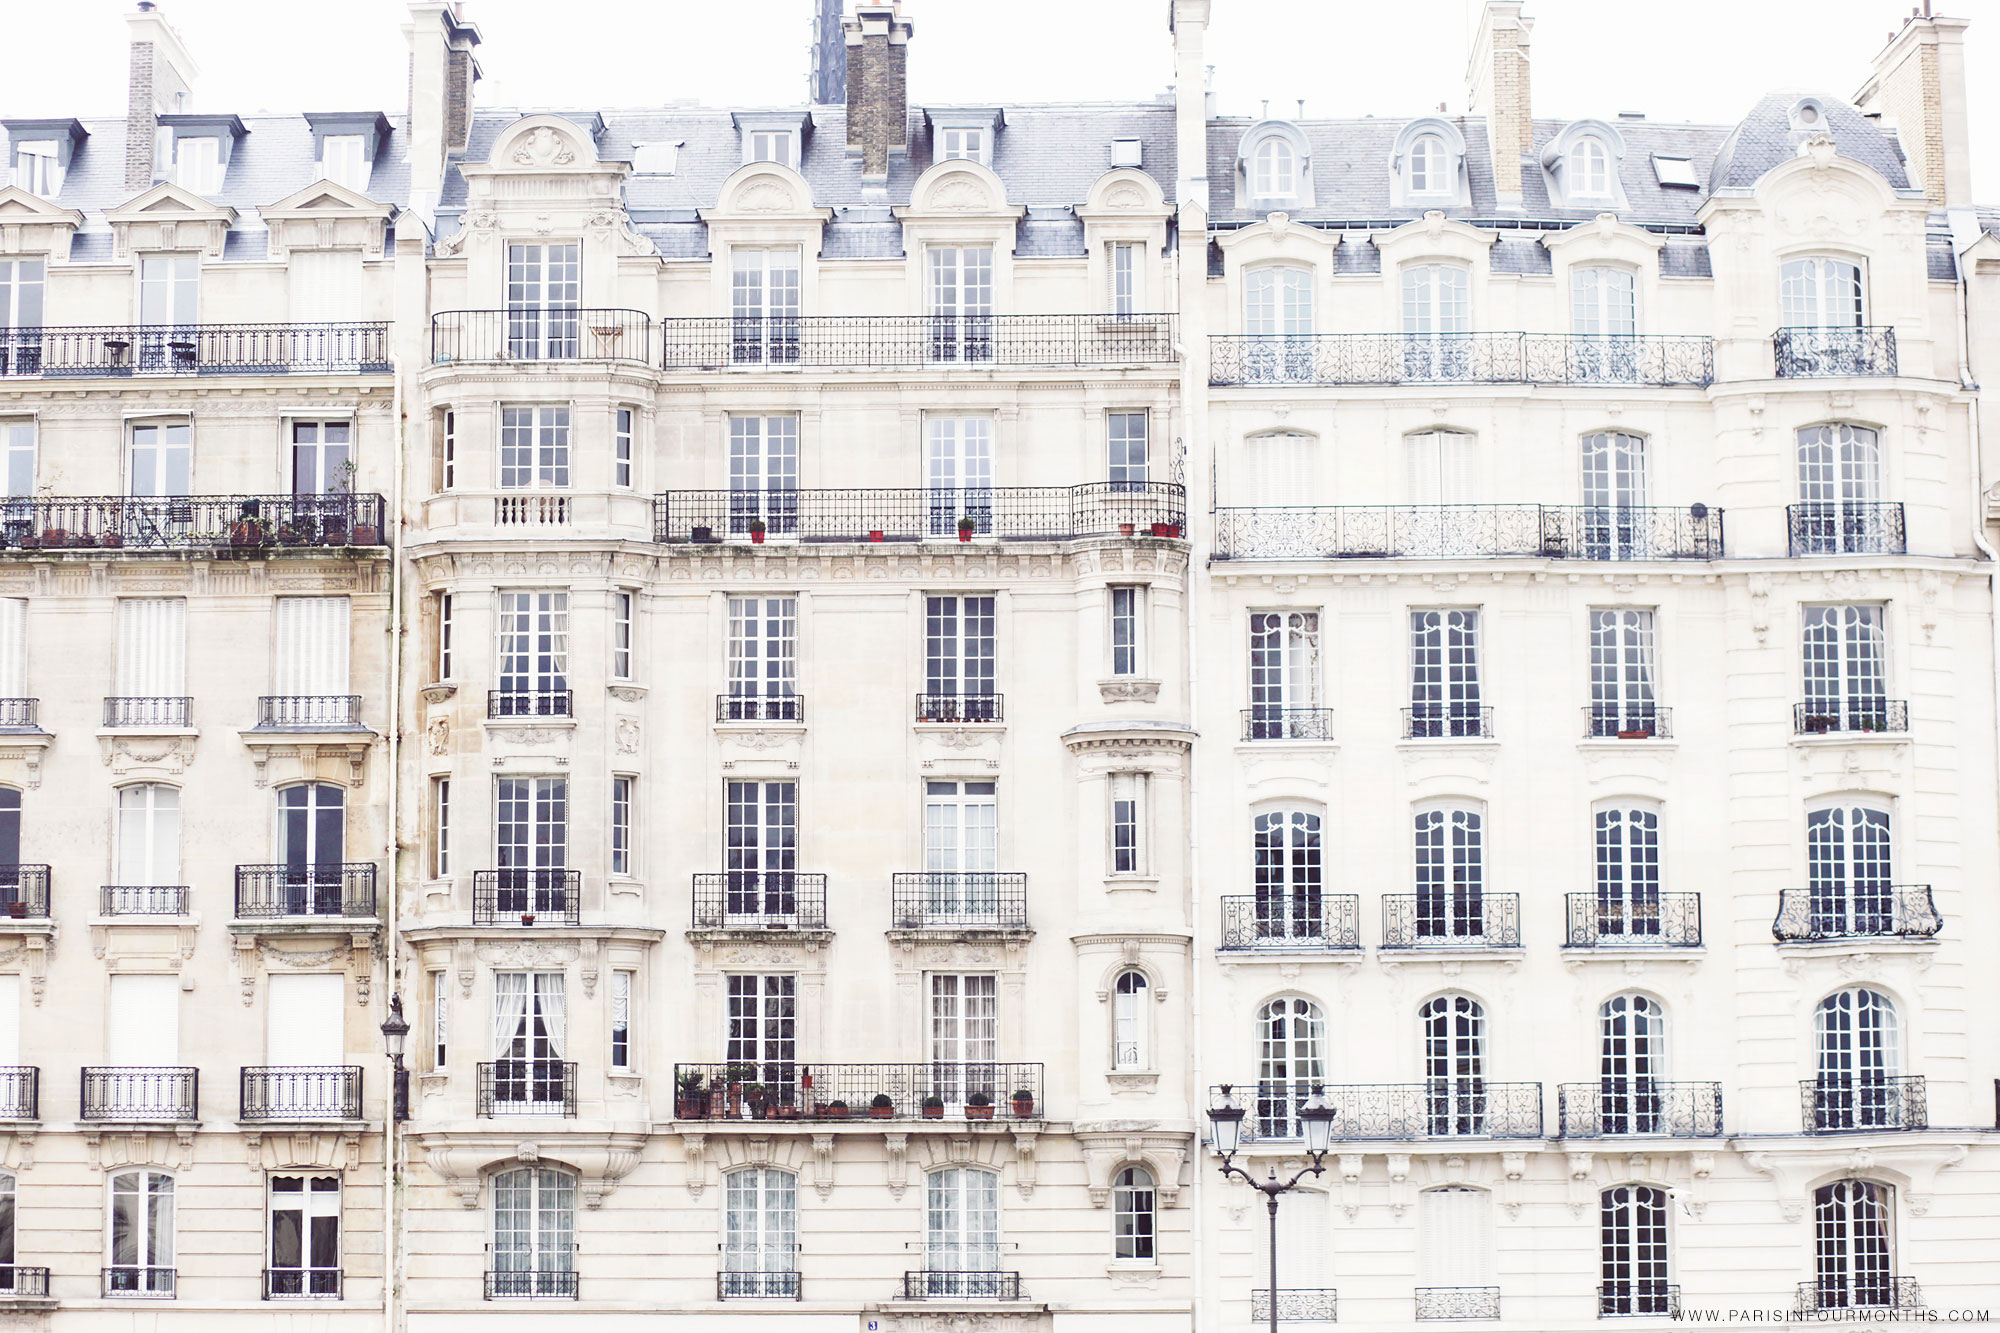 Paris by Carin Olsson (Paris in Four Months)